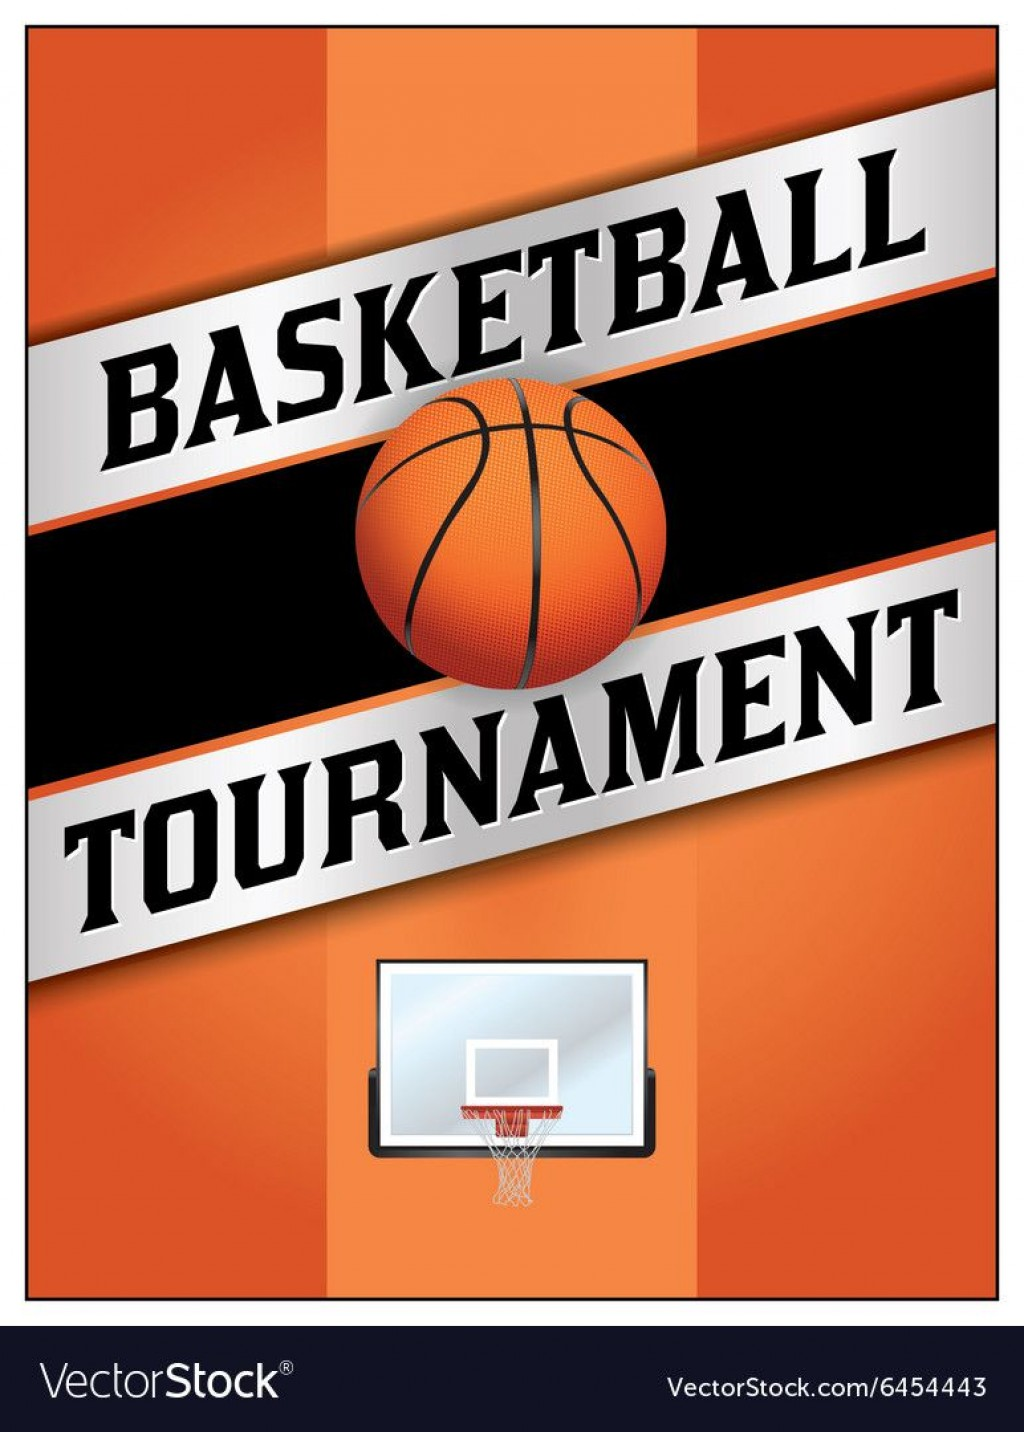 004 Top Basketball Tournament Flyer Template Highest Quality  3 On FreeLarge